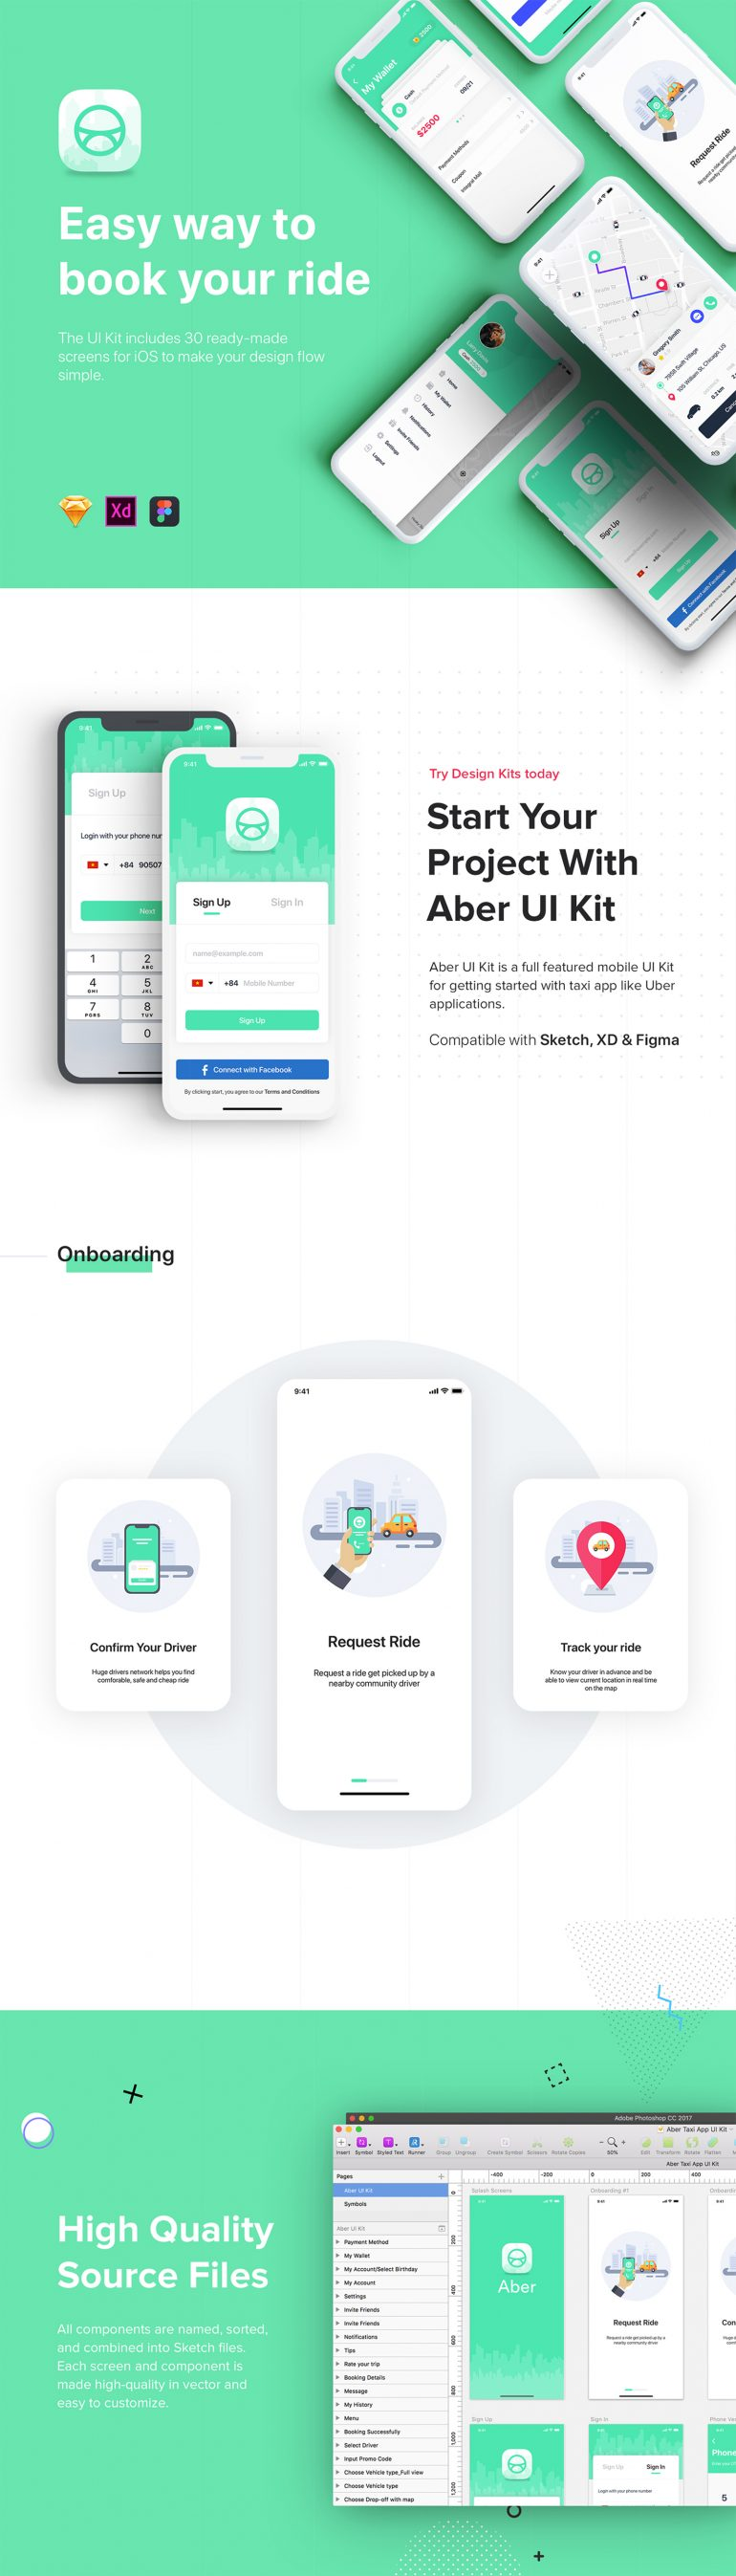 ABER – Taxi UI Kit for Mobile App